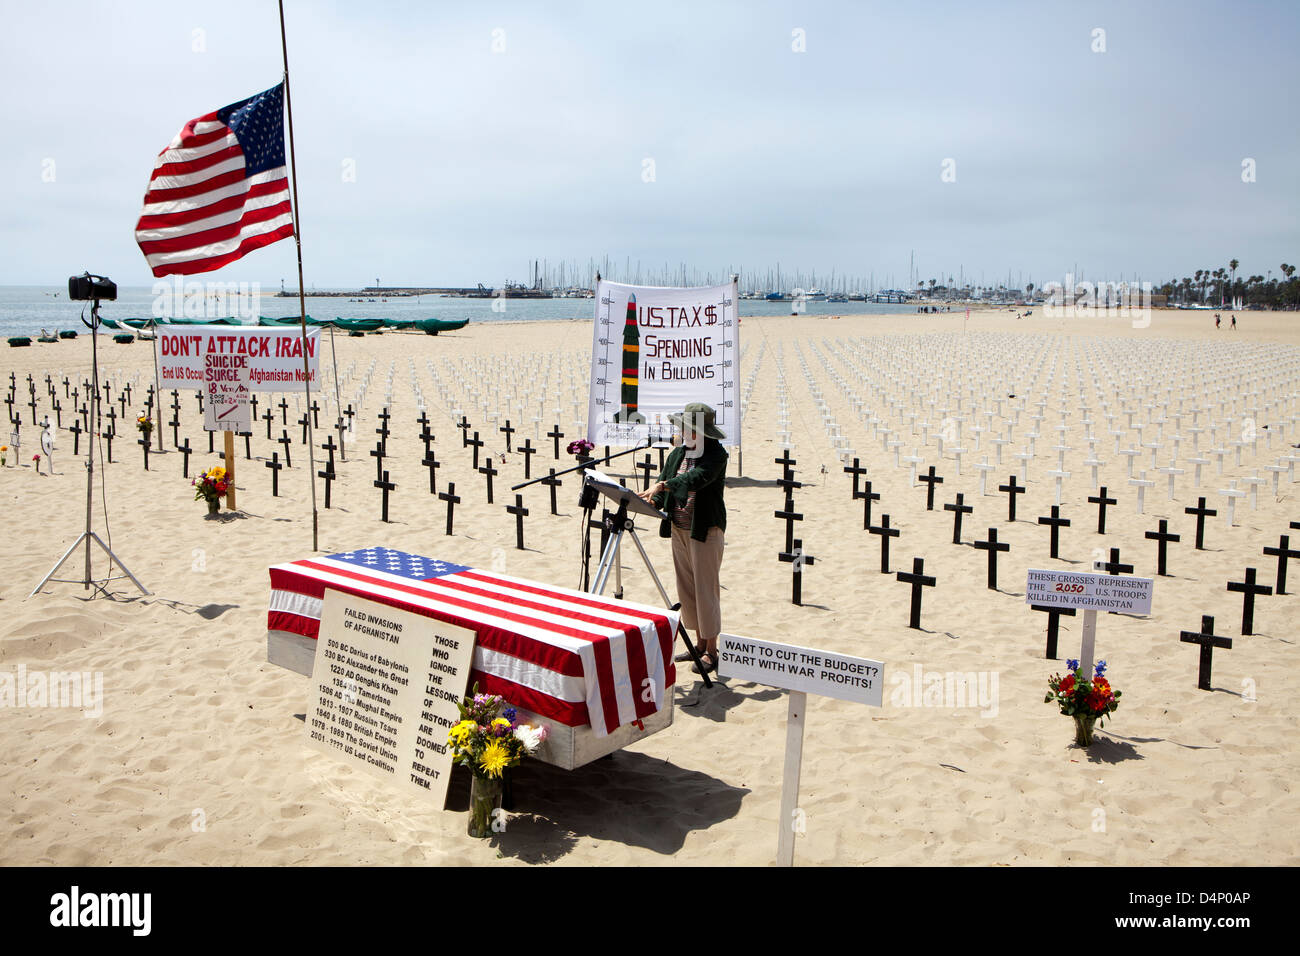 A coffin with crosses in the background at  the memorial Arlington West Santa Monica, a project of Veterans for - Stock Image